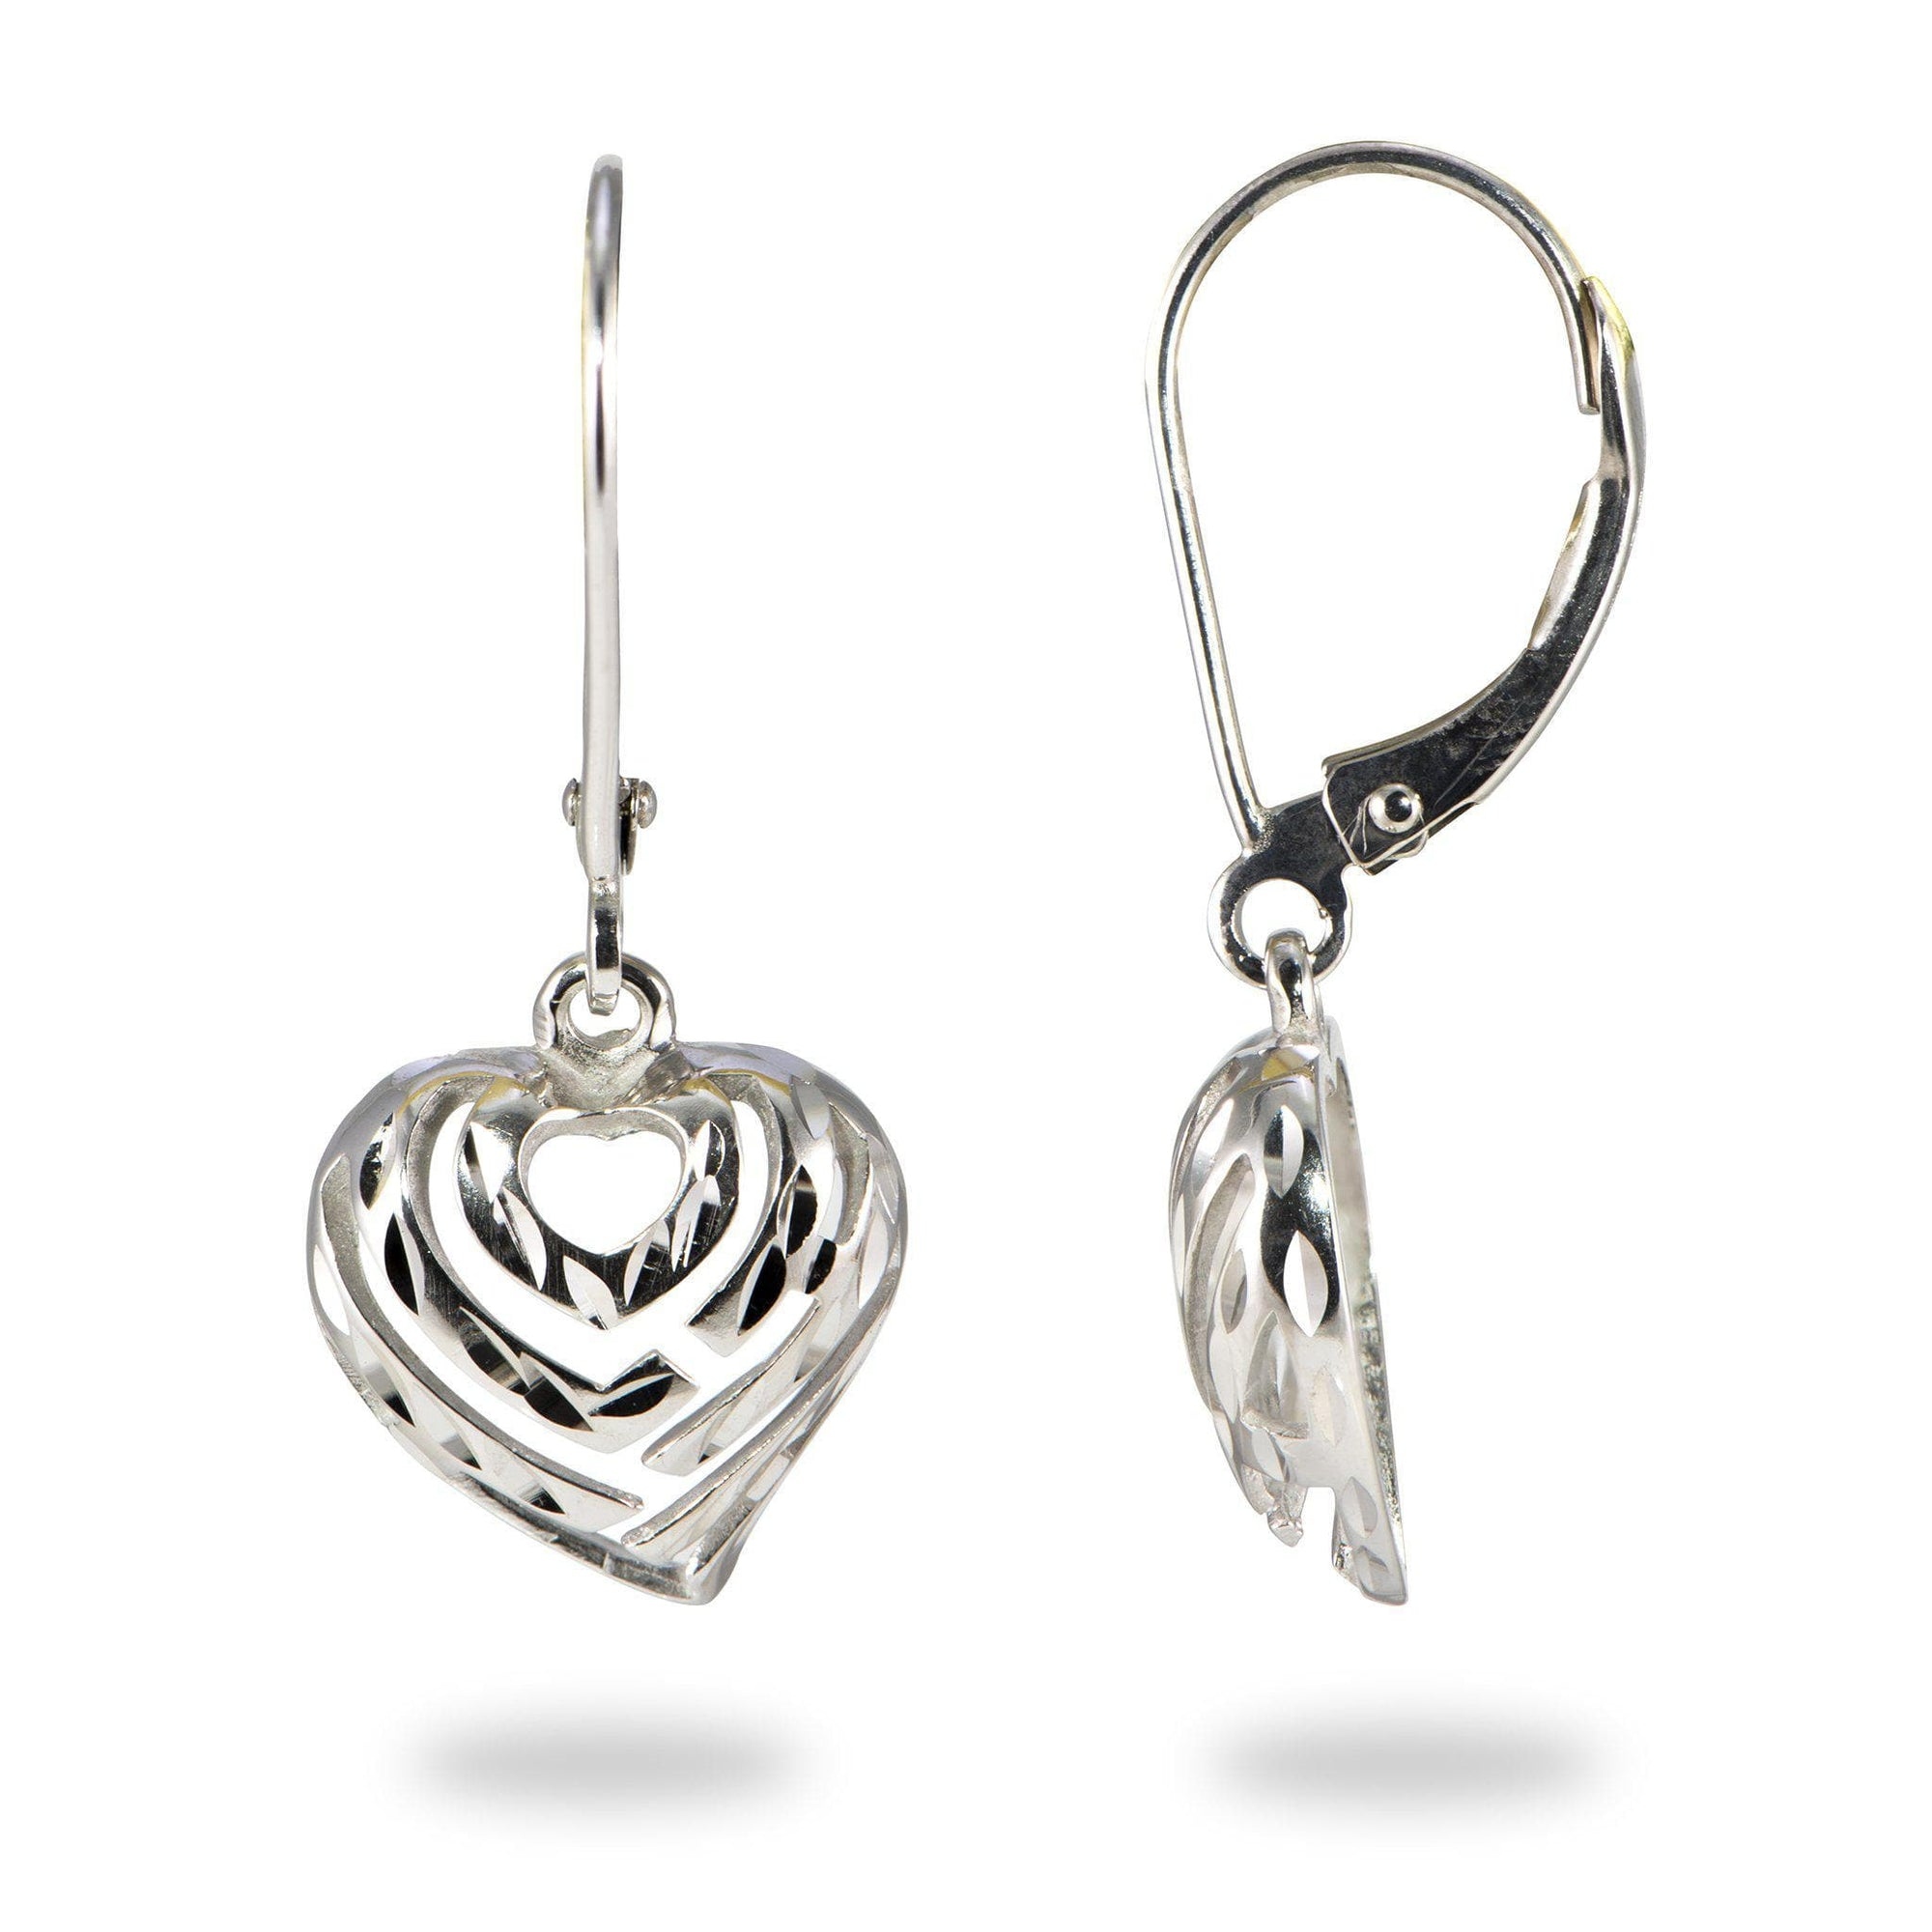 Aloha Heart Earrings in Sterling Silver - 18mm-[SKU]